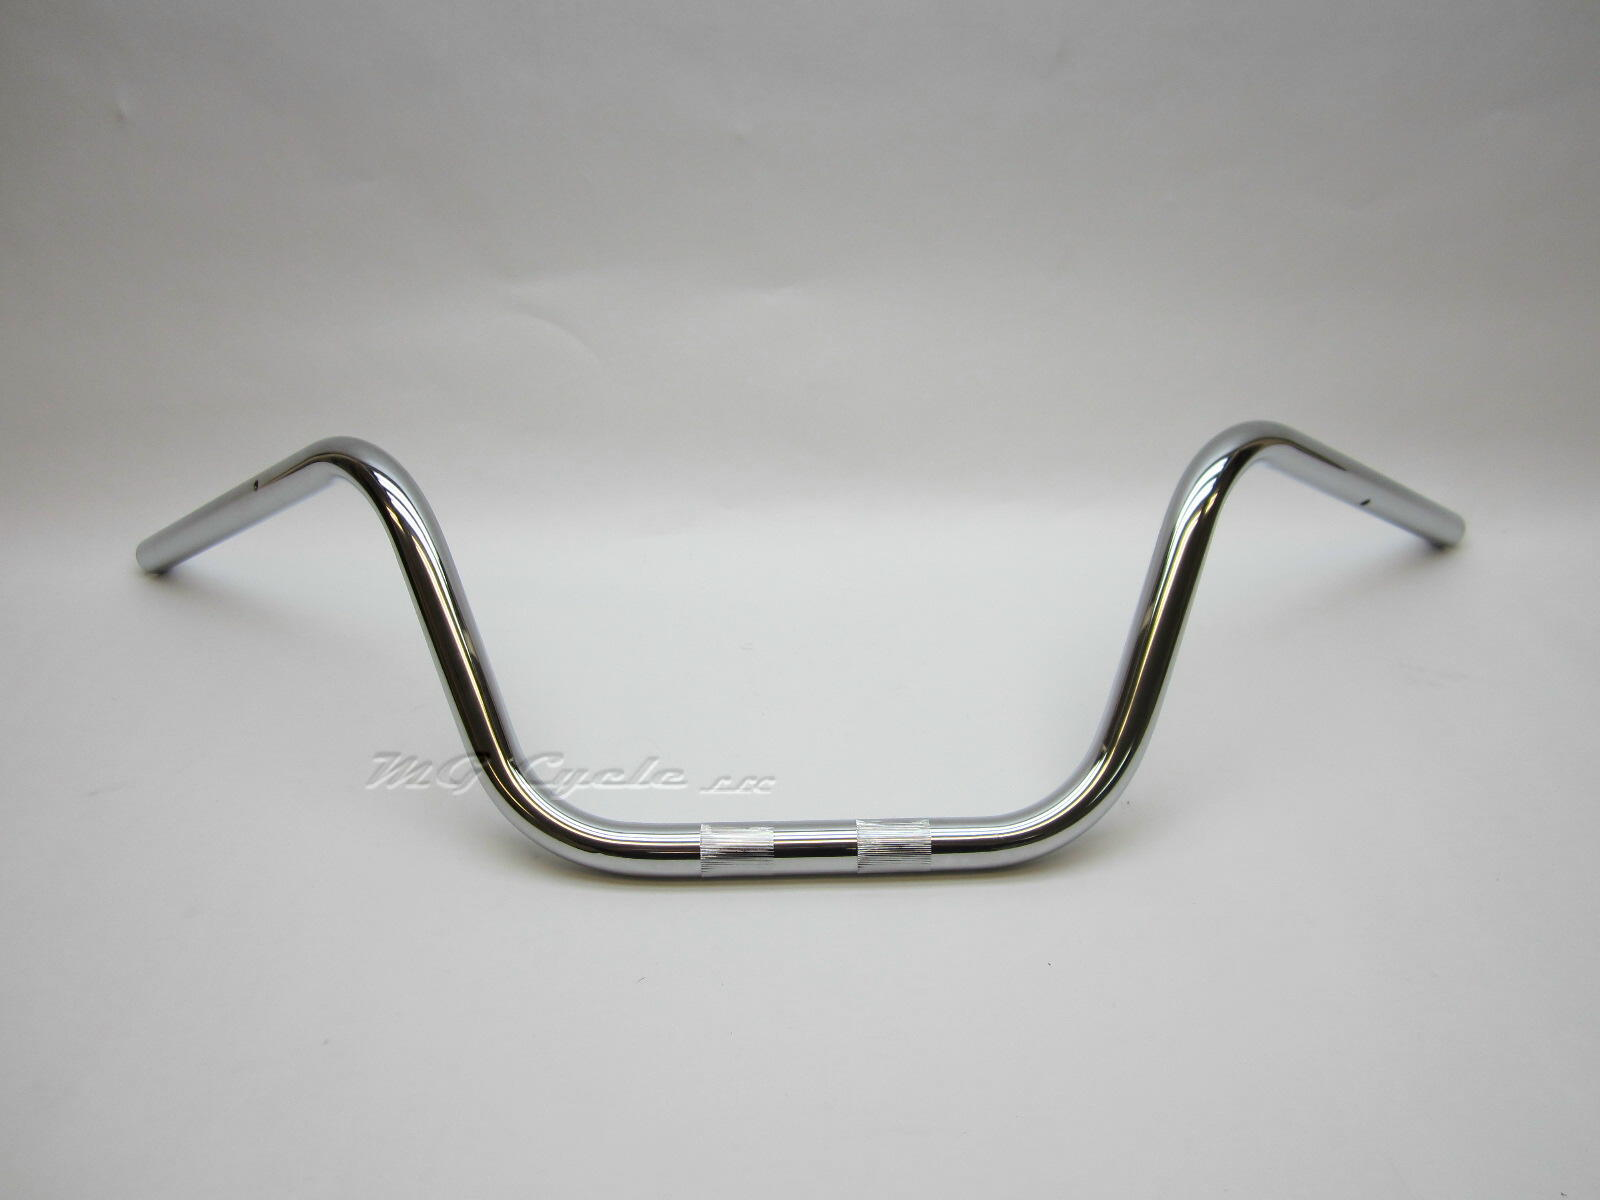 Original bend handlebar California III,